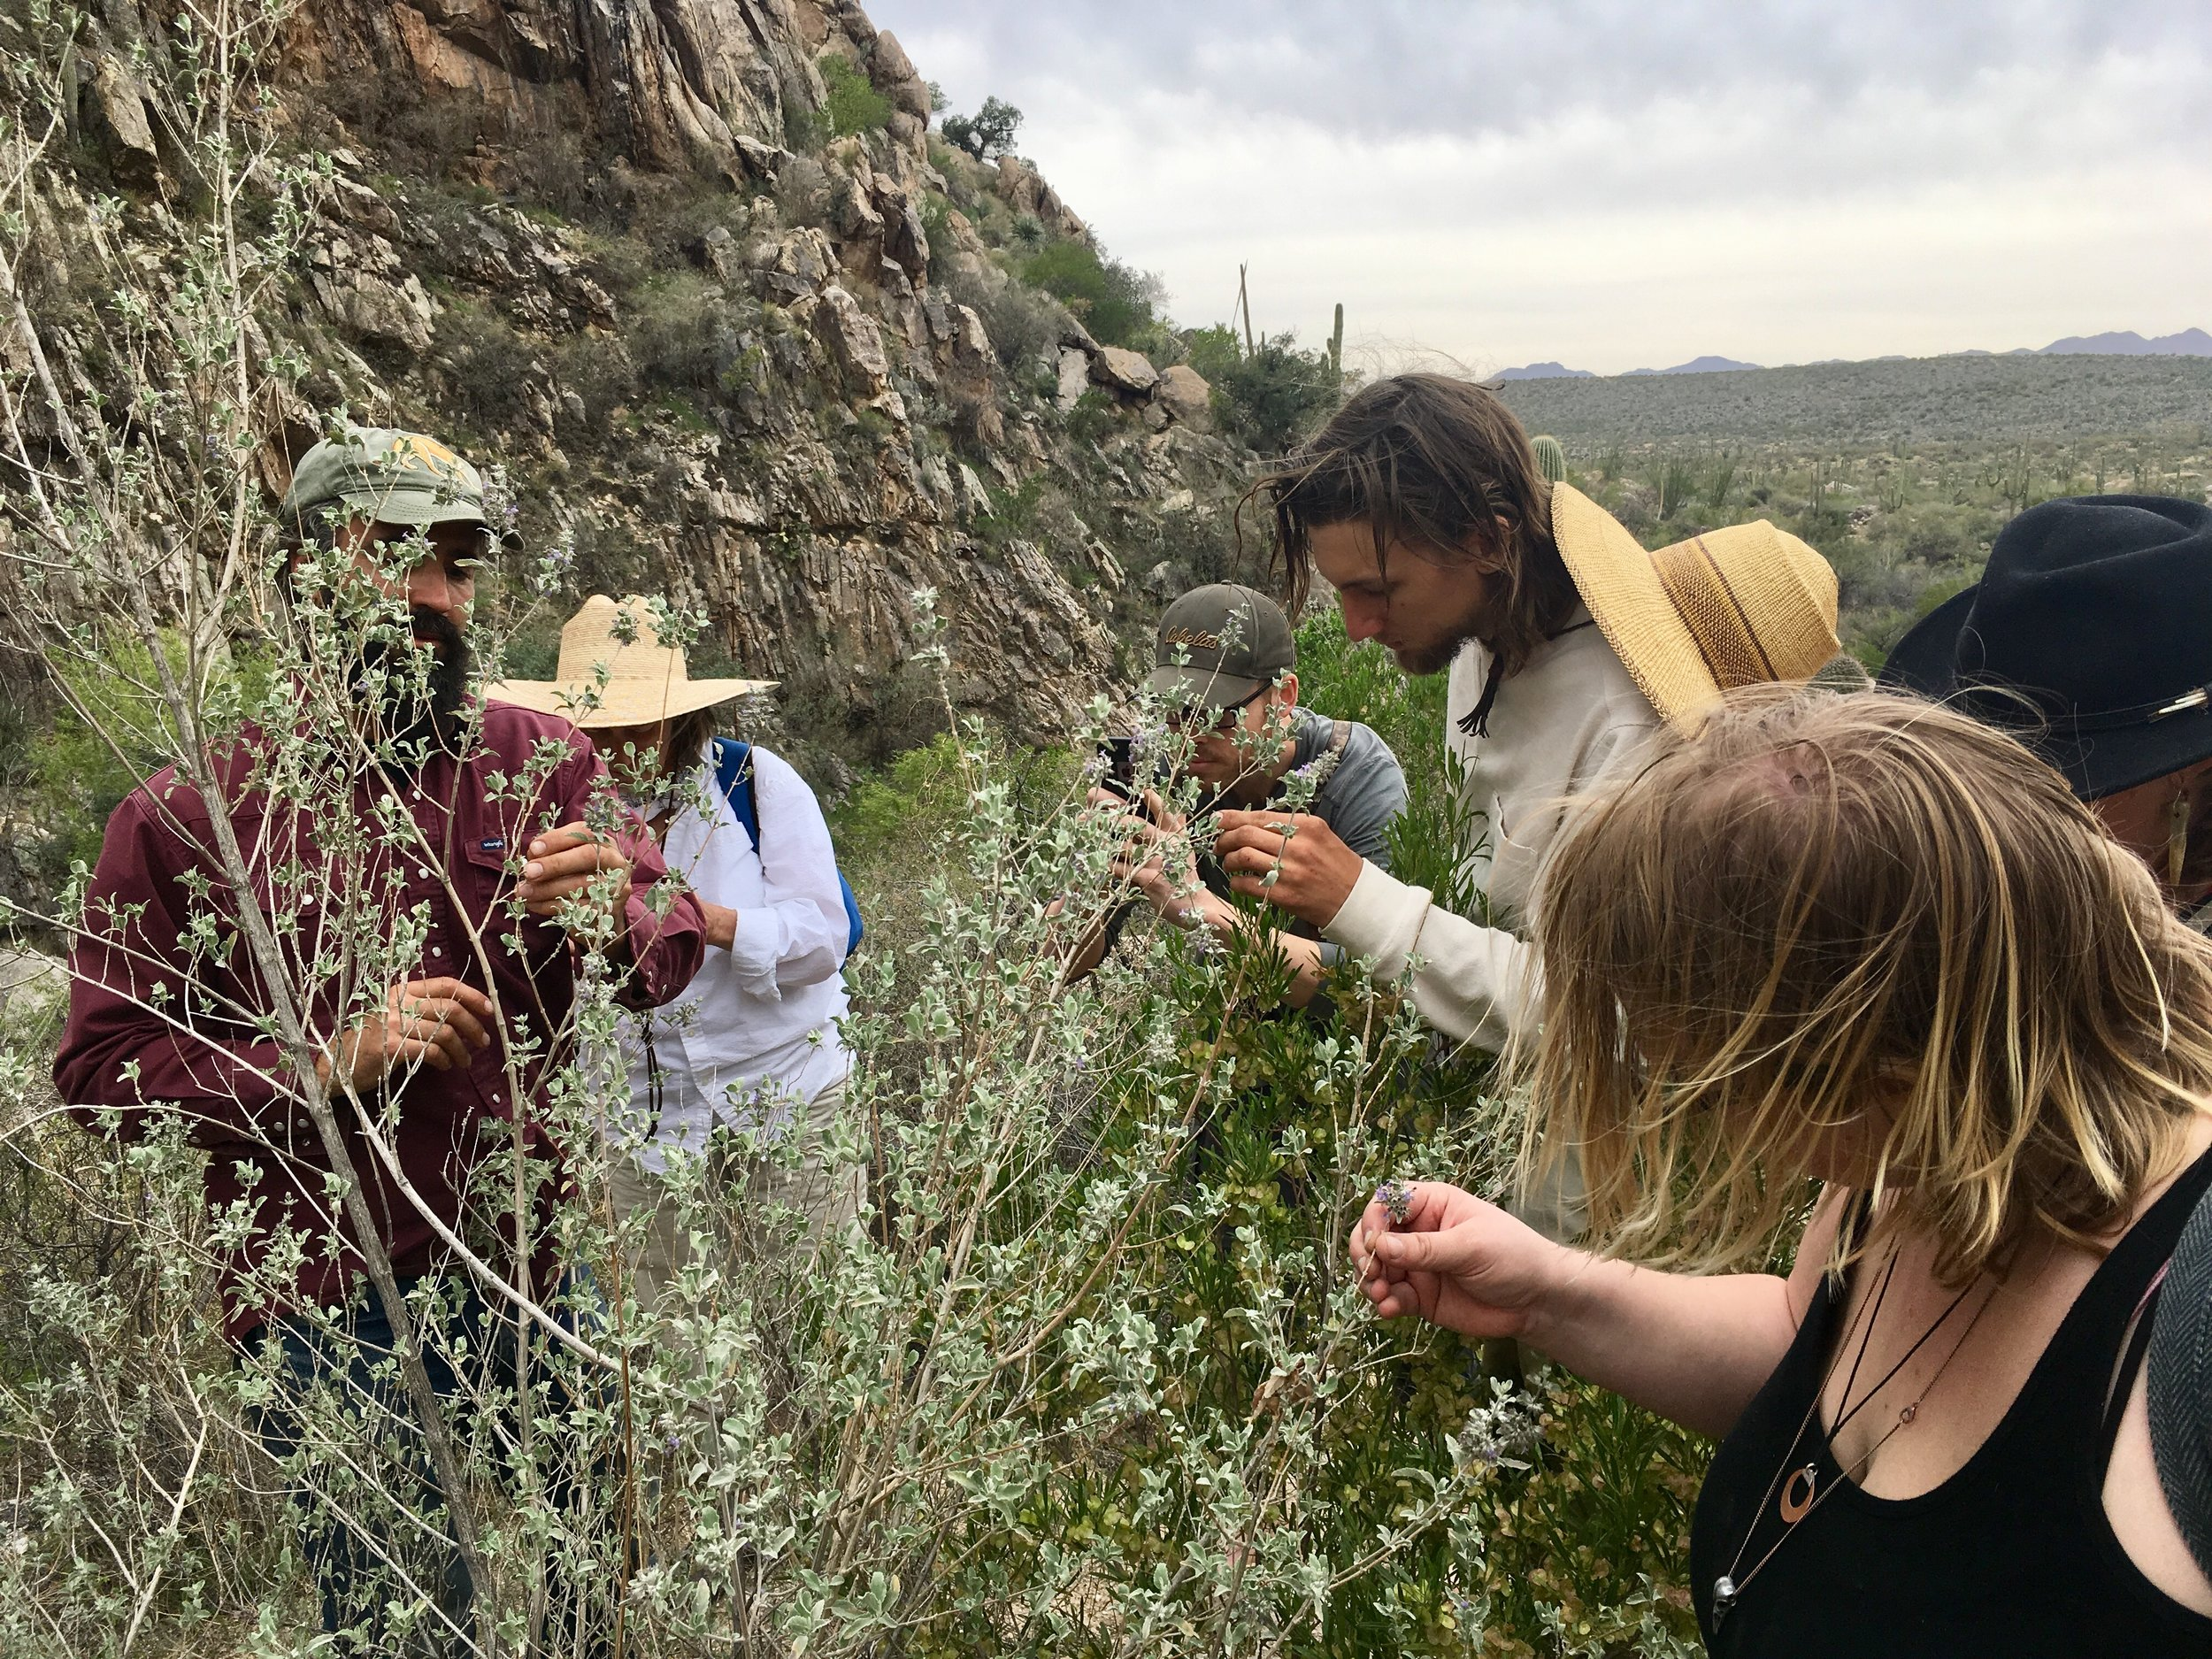 discovering the unique traits of desert lavender (Hyptis emoryi) in a field study